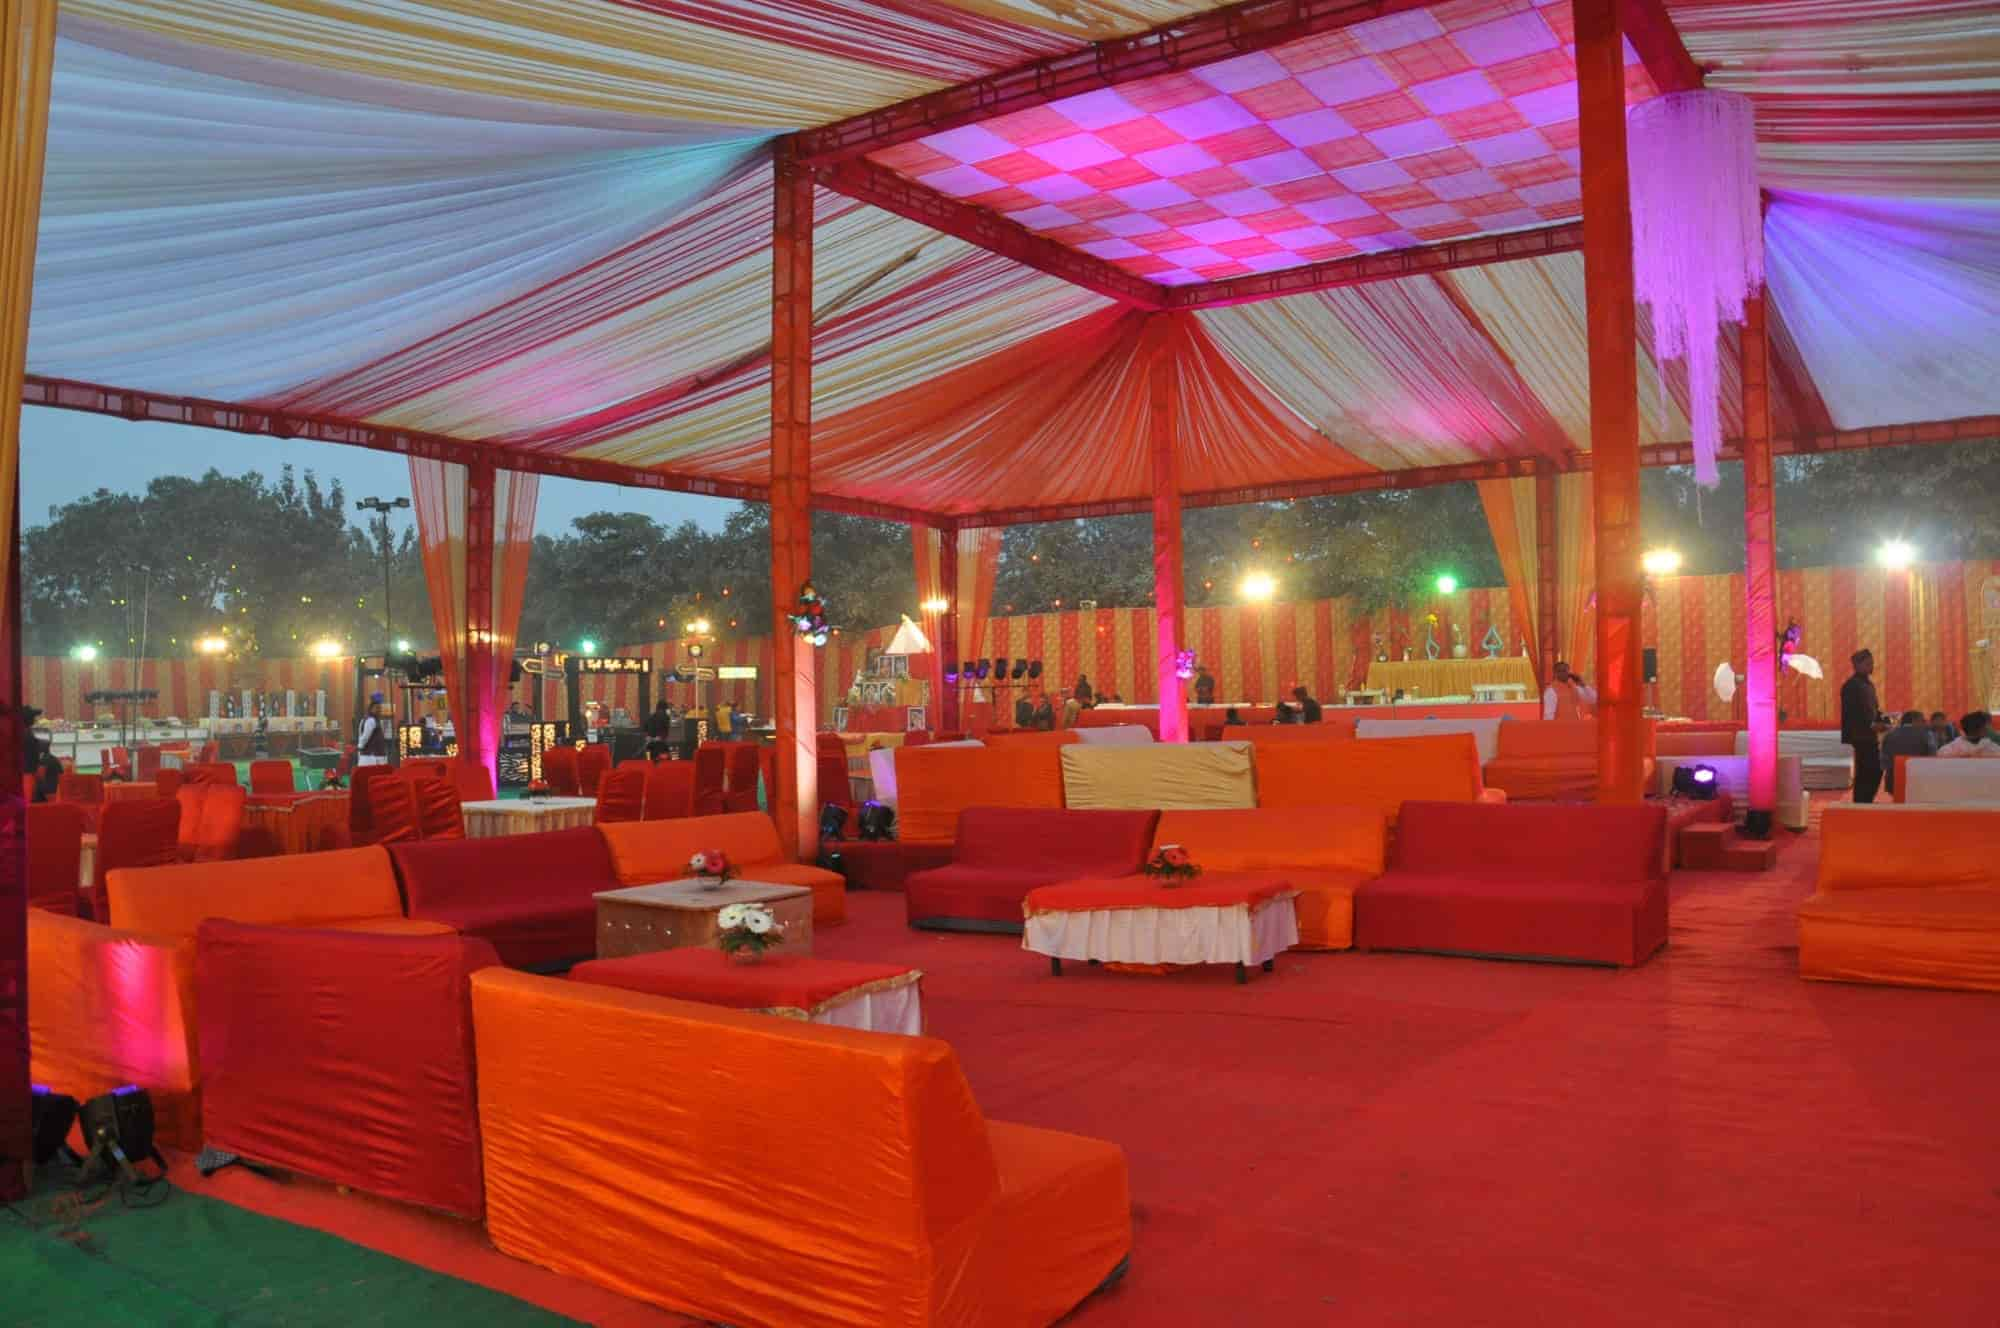 Pooja Deep Tent Services Reviews Sector 12 Delhi-NCR - 1 Ratings - Justdial & Pooja Deep Tent Services Reviews Sector 12 Delhi-NCR - 1 Ratings ...